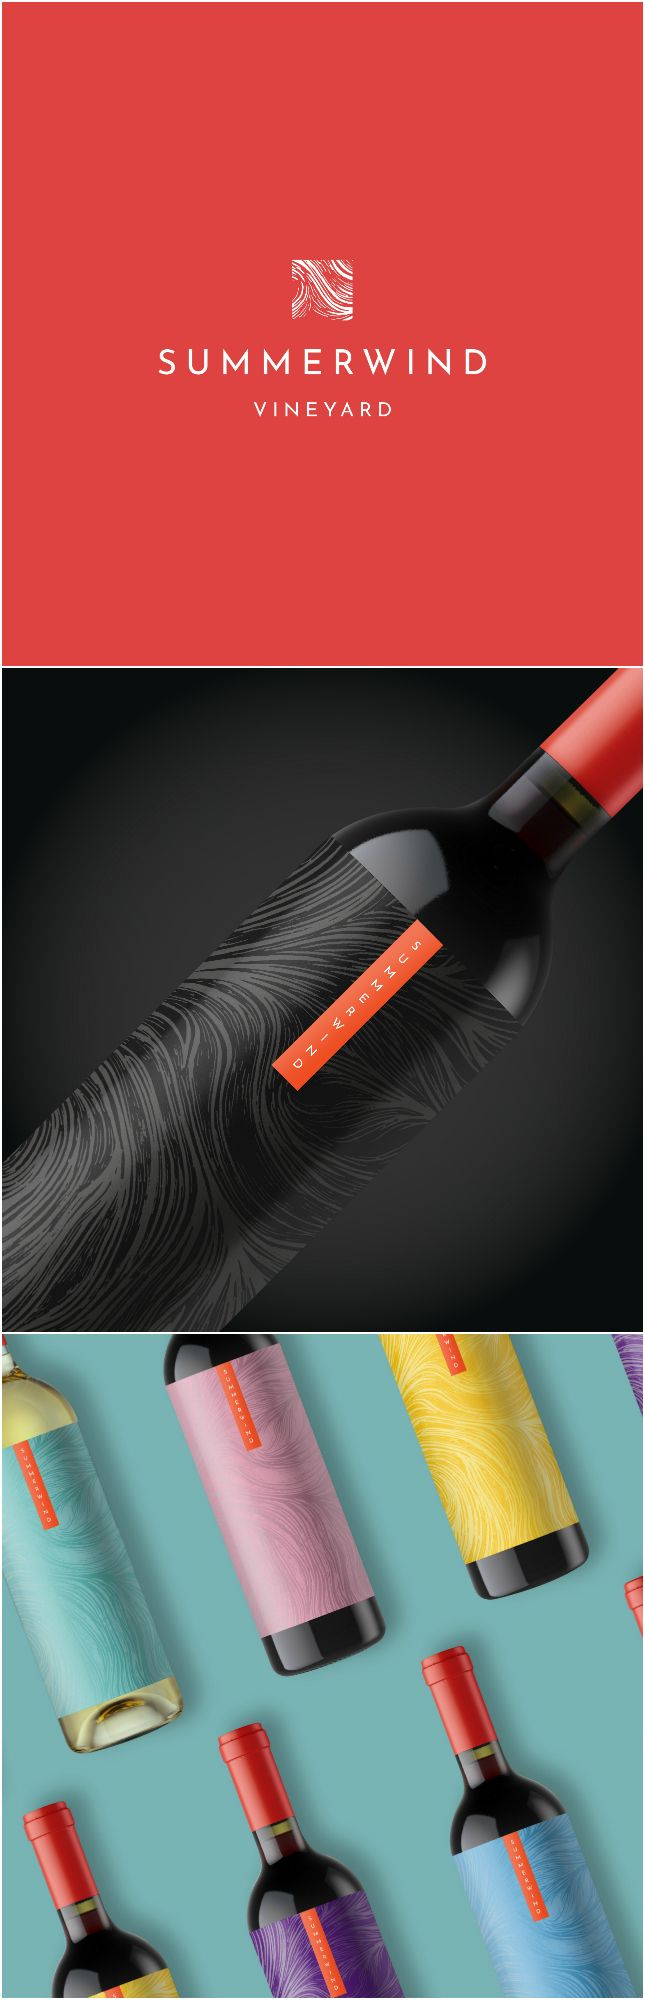 Pin On Wine Brand And Packaging Design